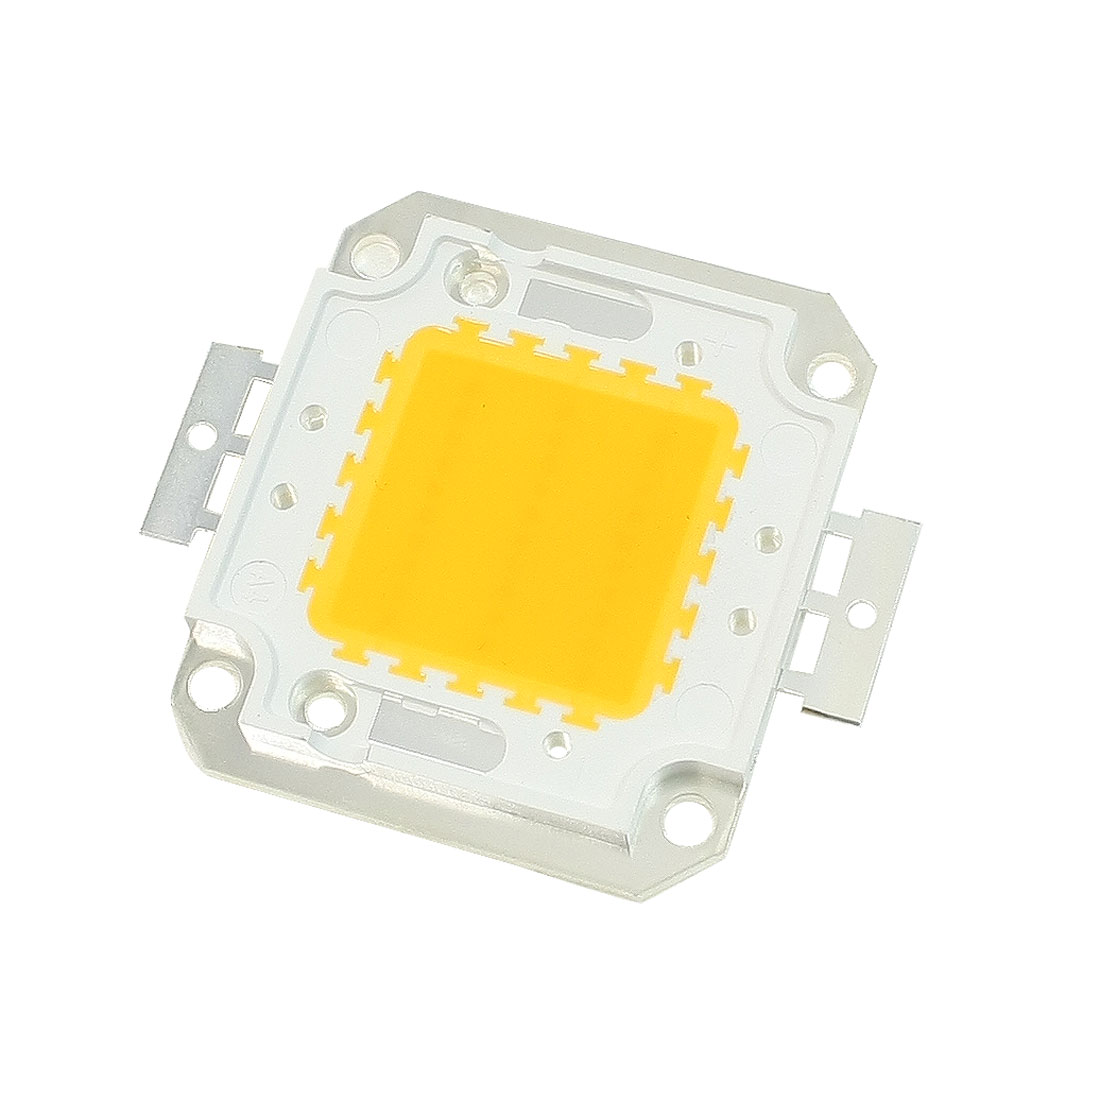 2500-3500LM 2850-3050K 30W High Power Warm White 3x10 IC LED Lamp Blub Beads